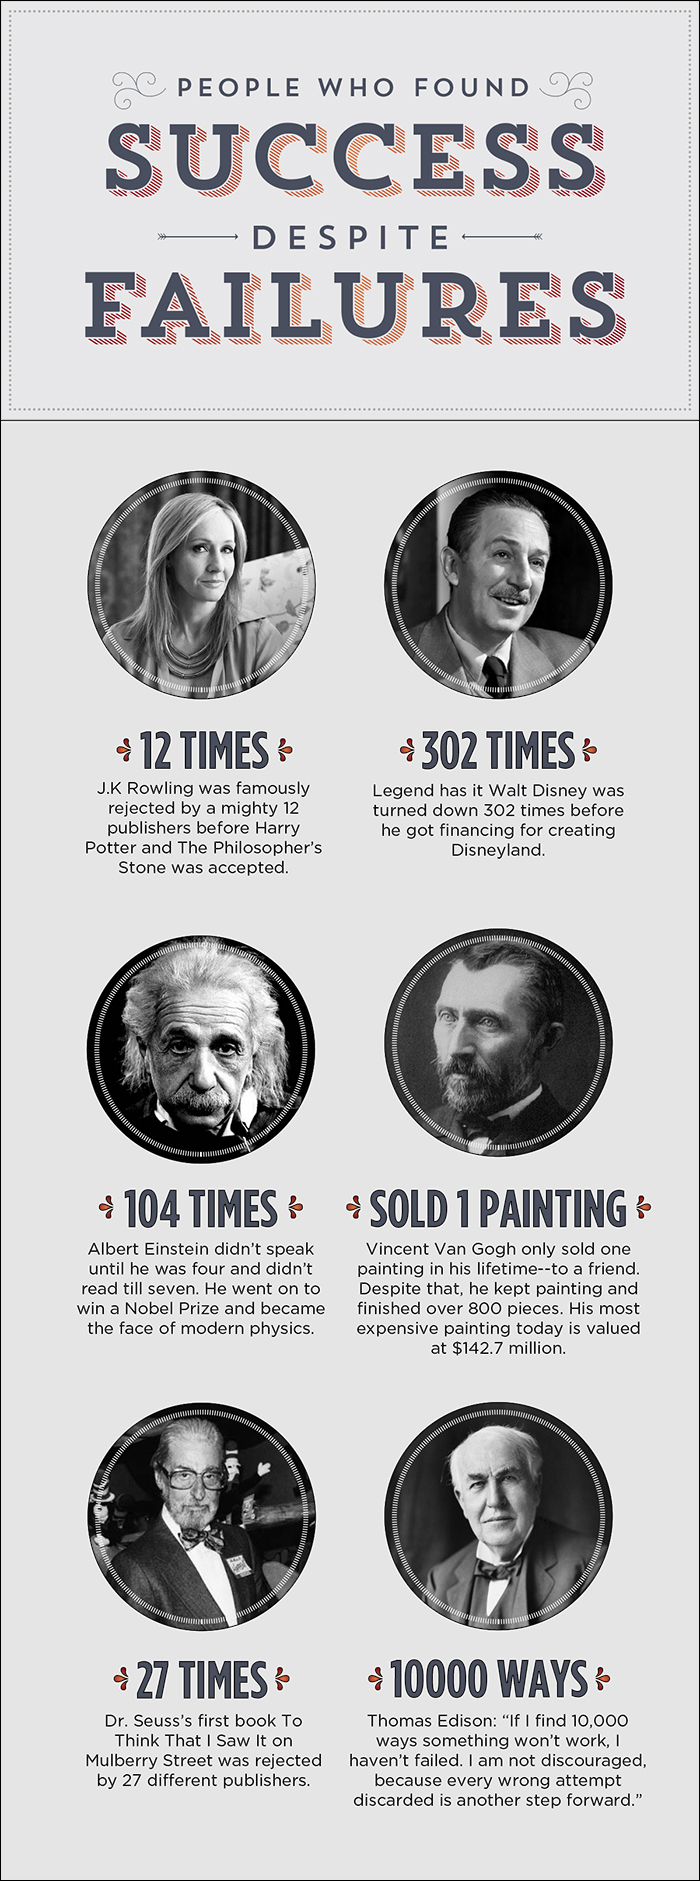 6 Famous Small Business and Entrepreneur Success Stories